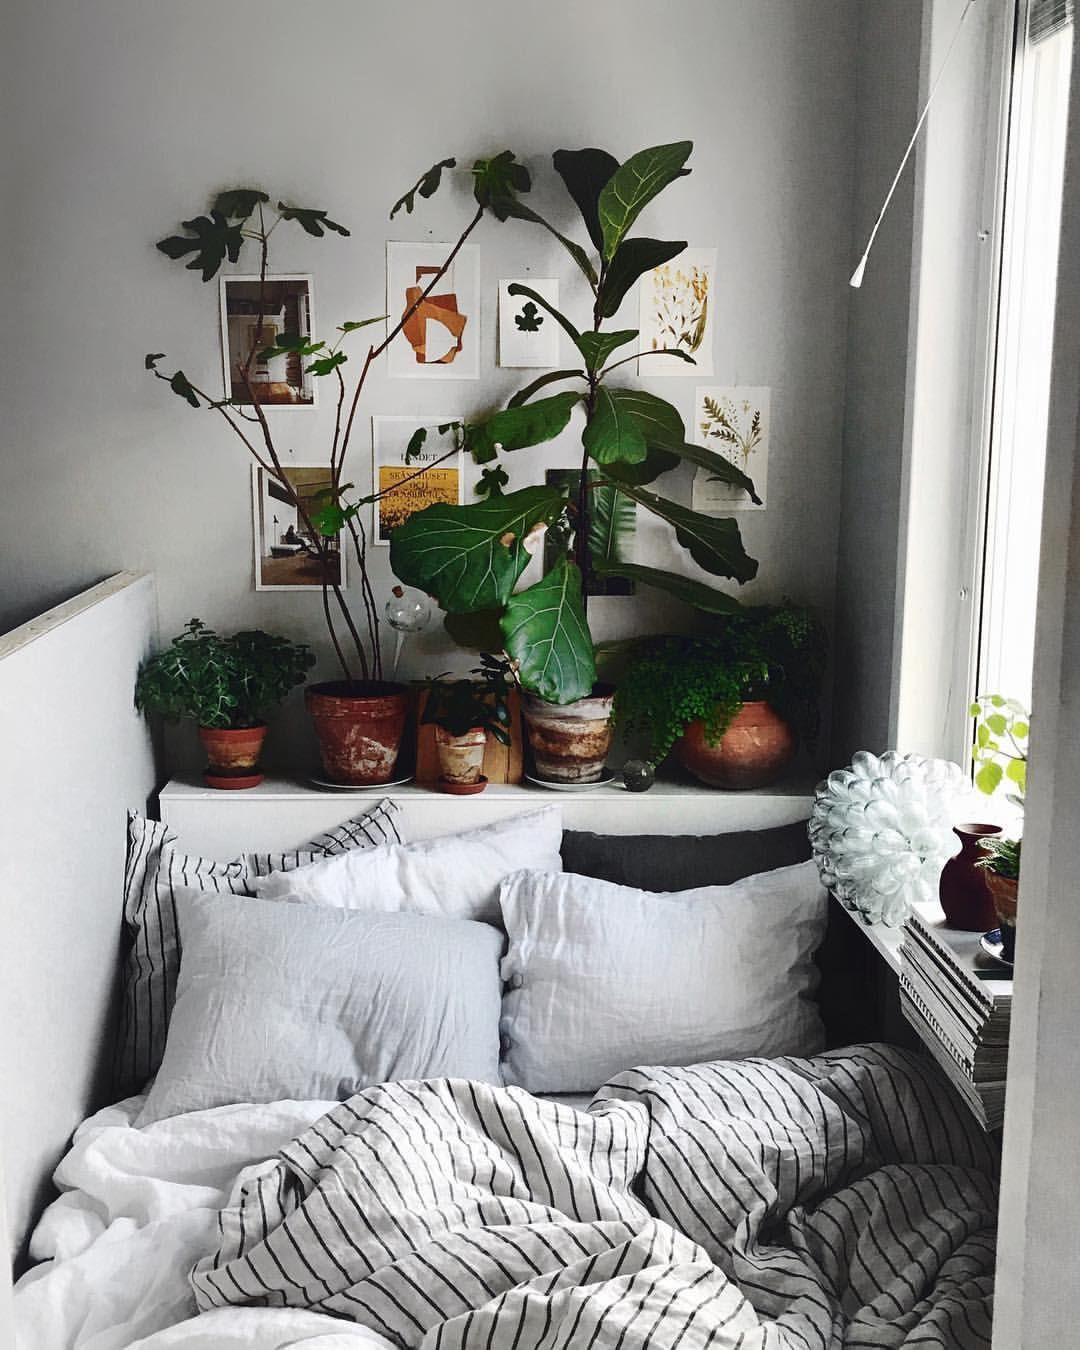 Cozy Home Decor Ideas To Be More Hygge: Pin By Larissa Jantz On Home Decor In 2019